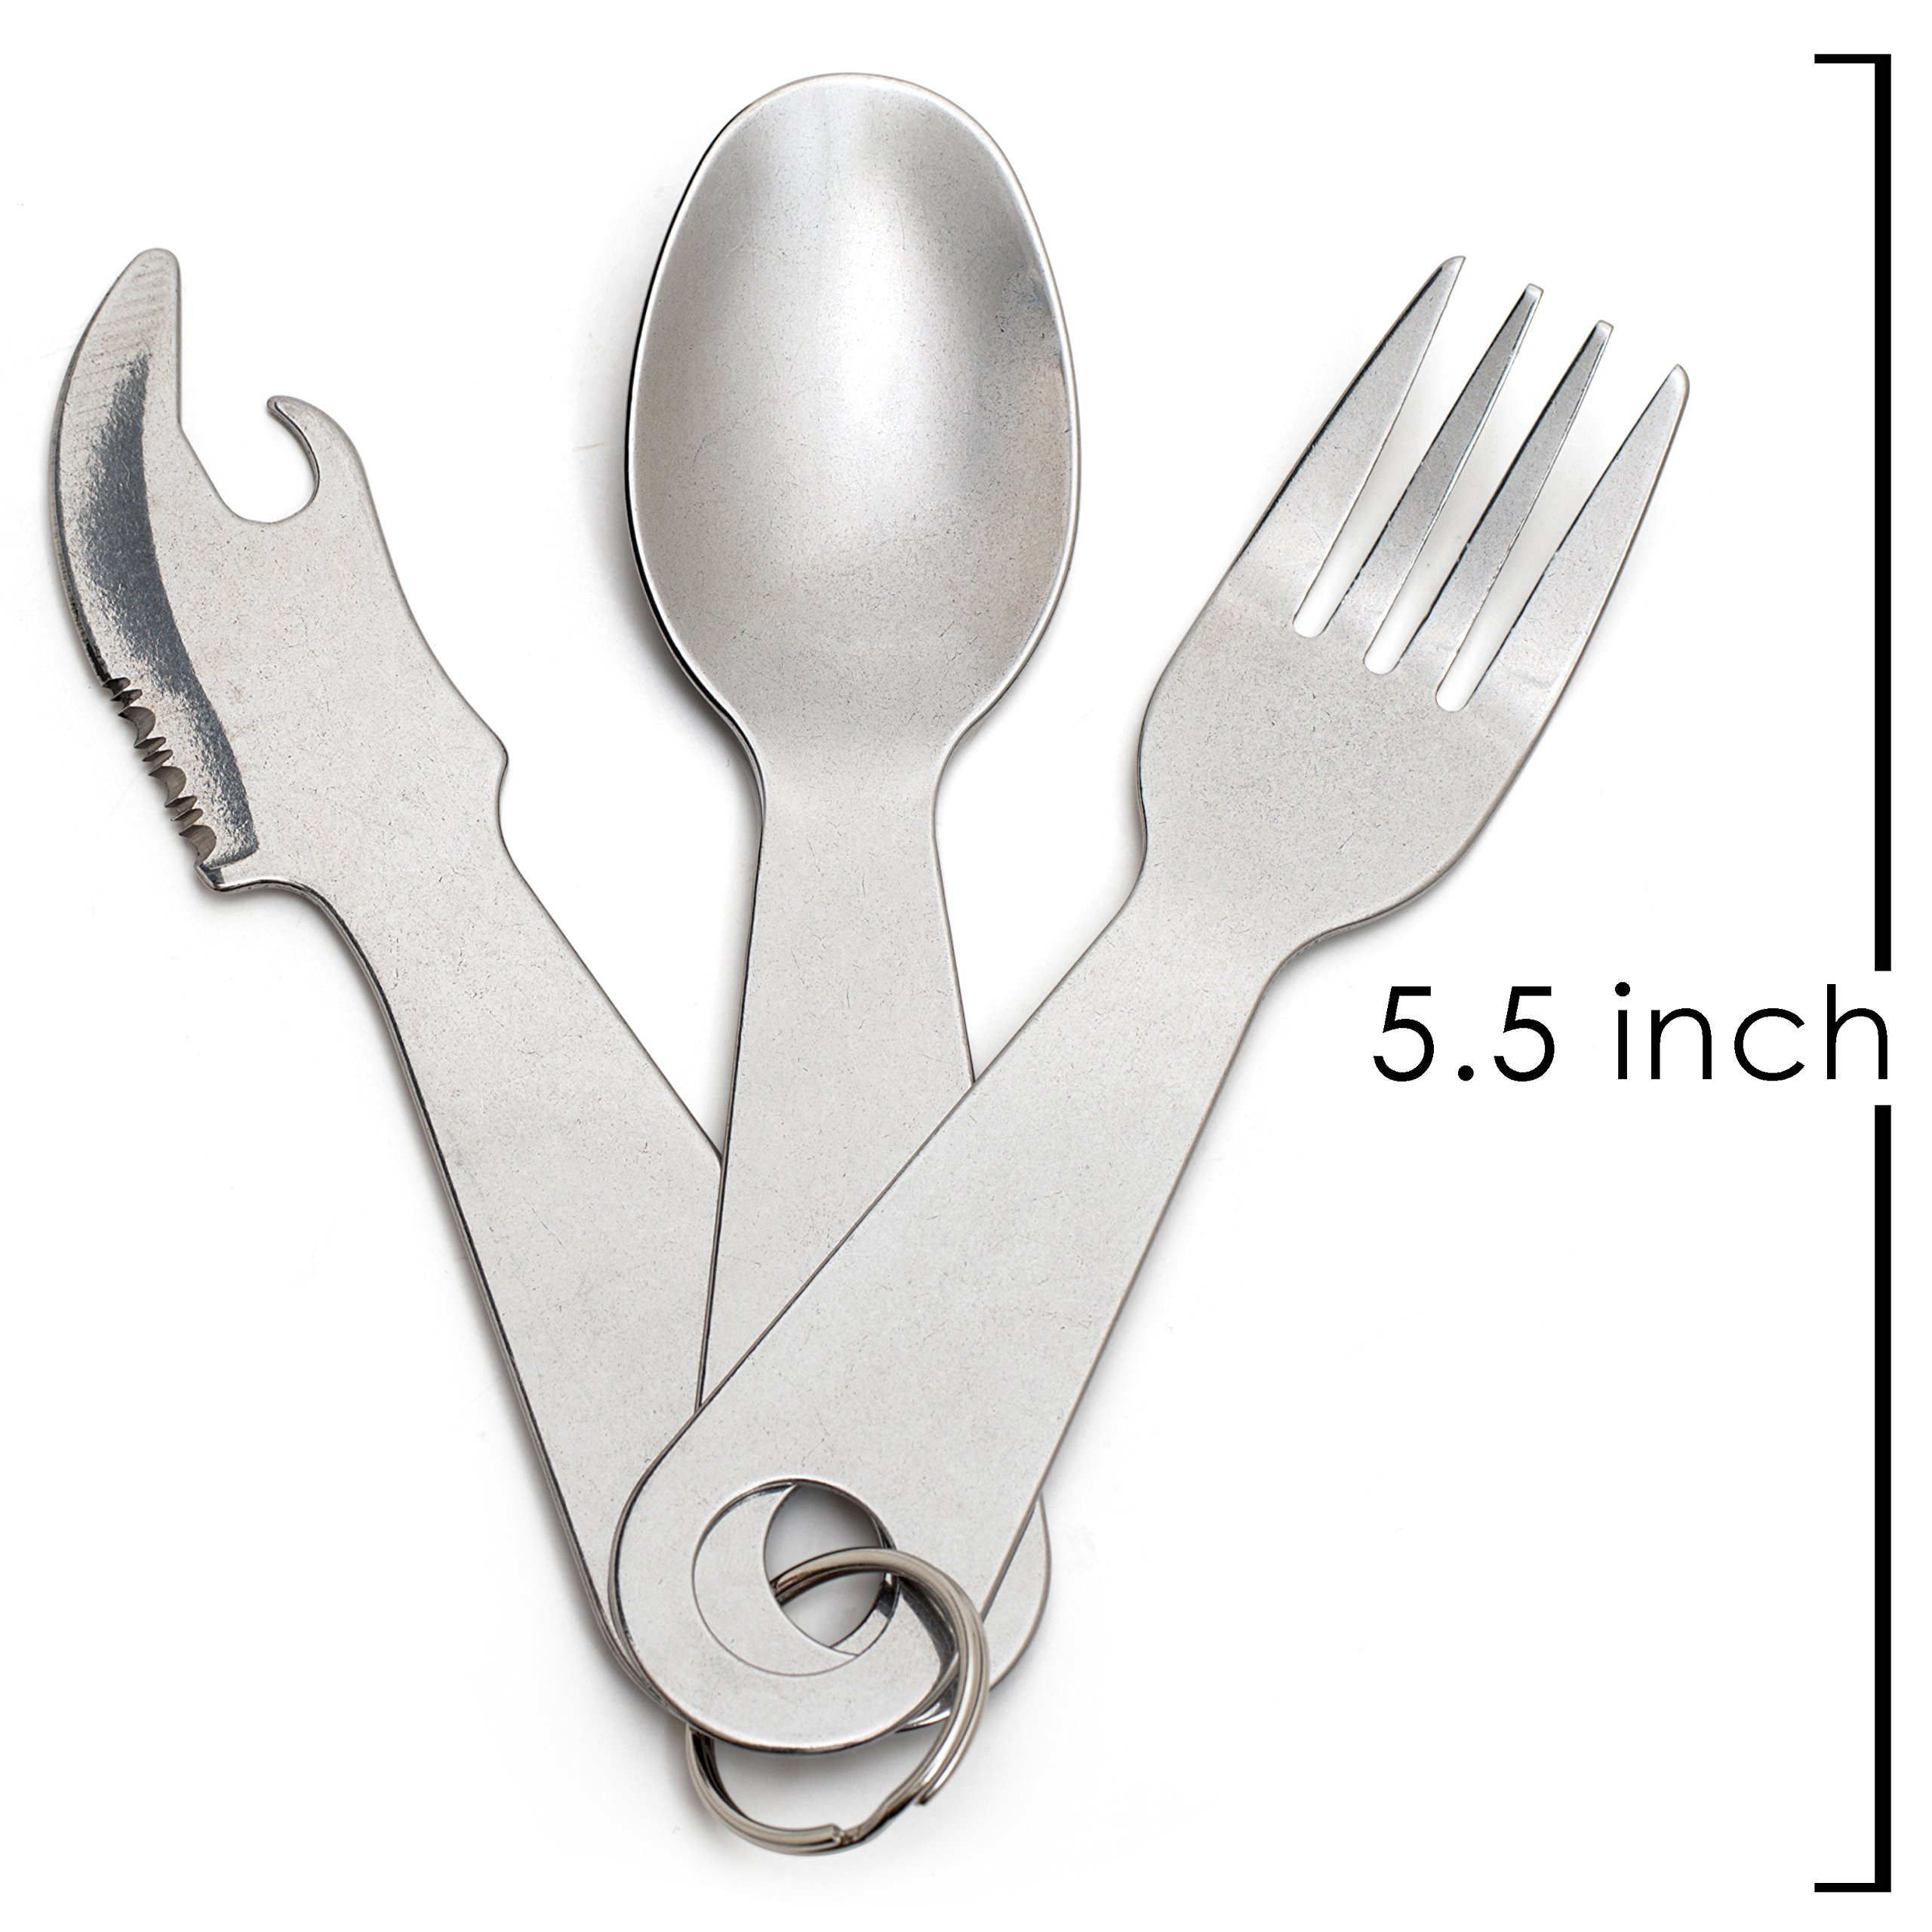 Out&Joy Lightweight Stainless Steel Camping Cutlery Set – Compact, Multi-Purpose, Eco-Friendly Silverware Set Includes 2 Forks, 2 Spoons, 2 Knives, + 2 Can and Bottle Opener (2 Person Setting)